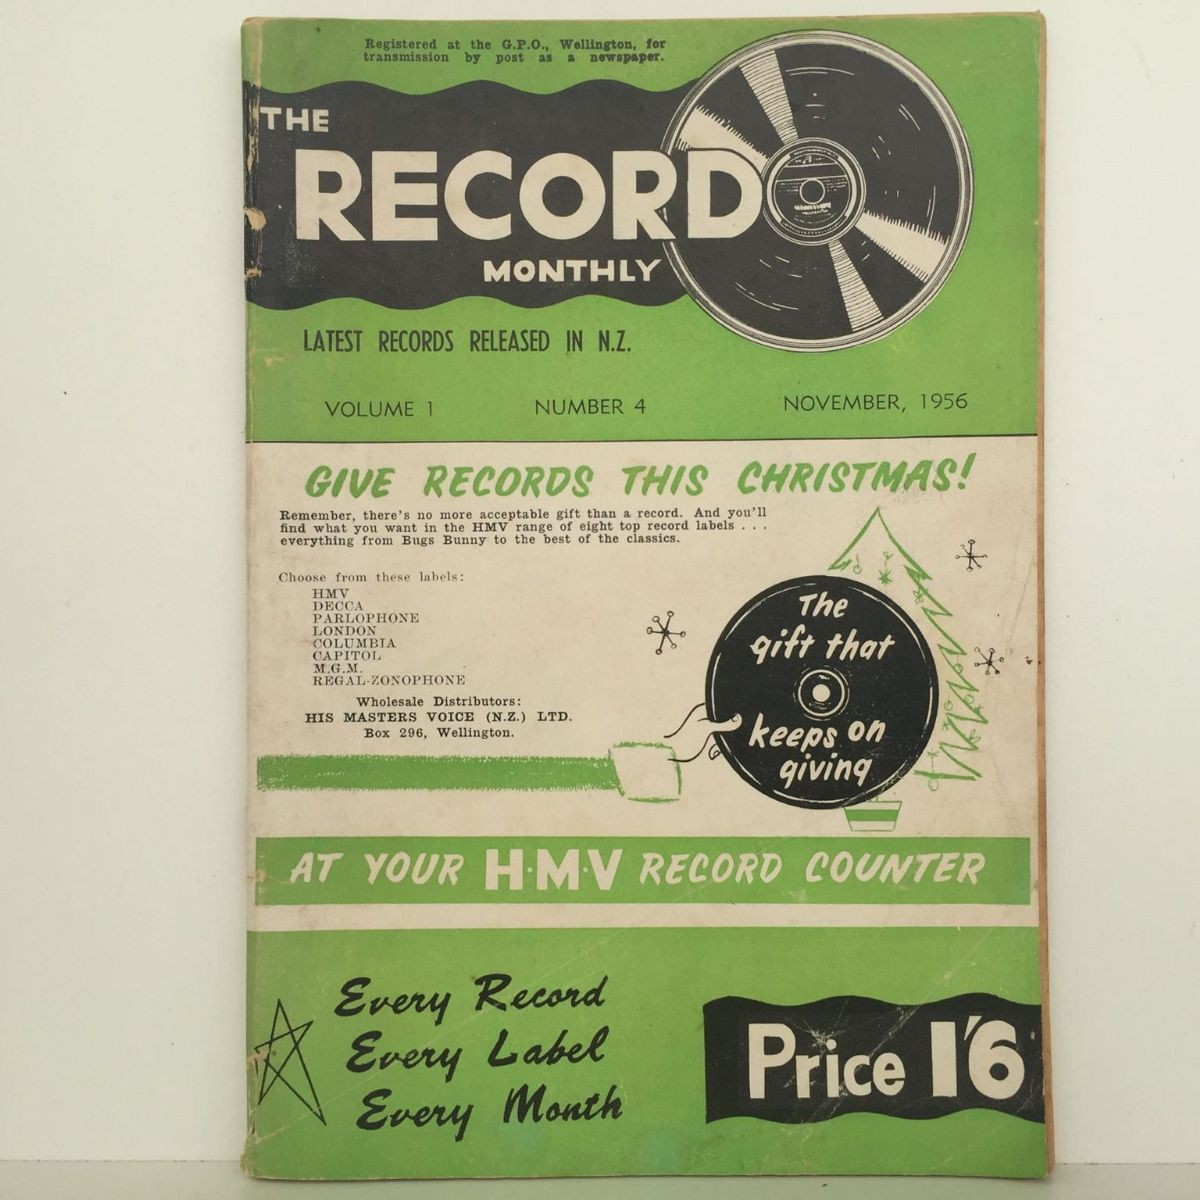 THE RECORD MONTHLY: His Masters Voice Vol 1 #4 March 1956